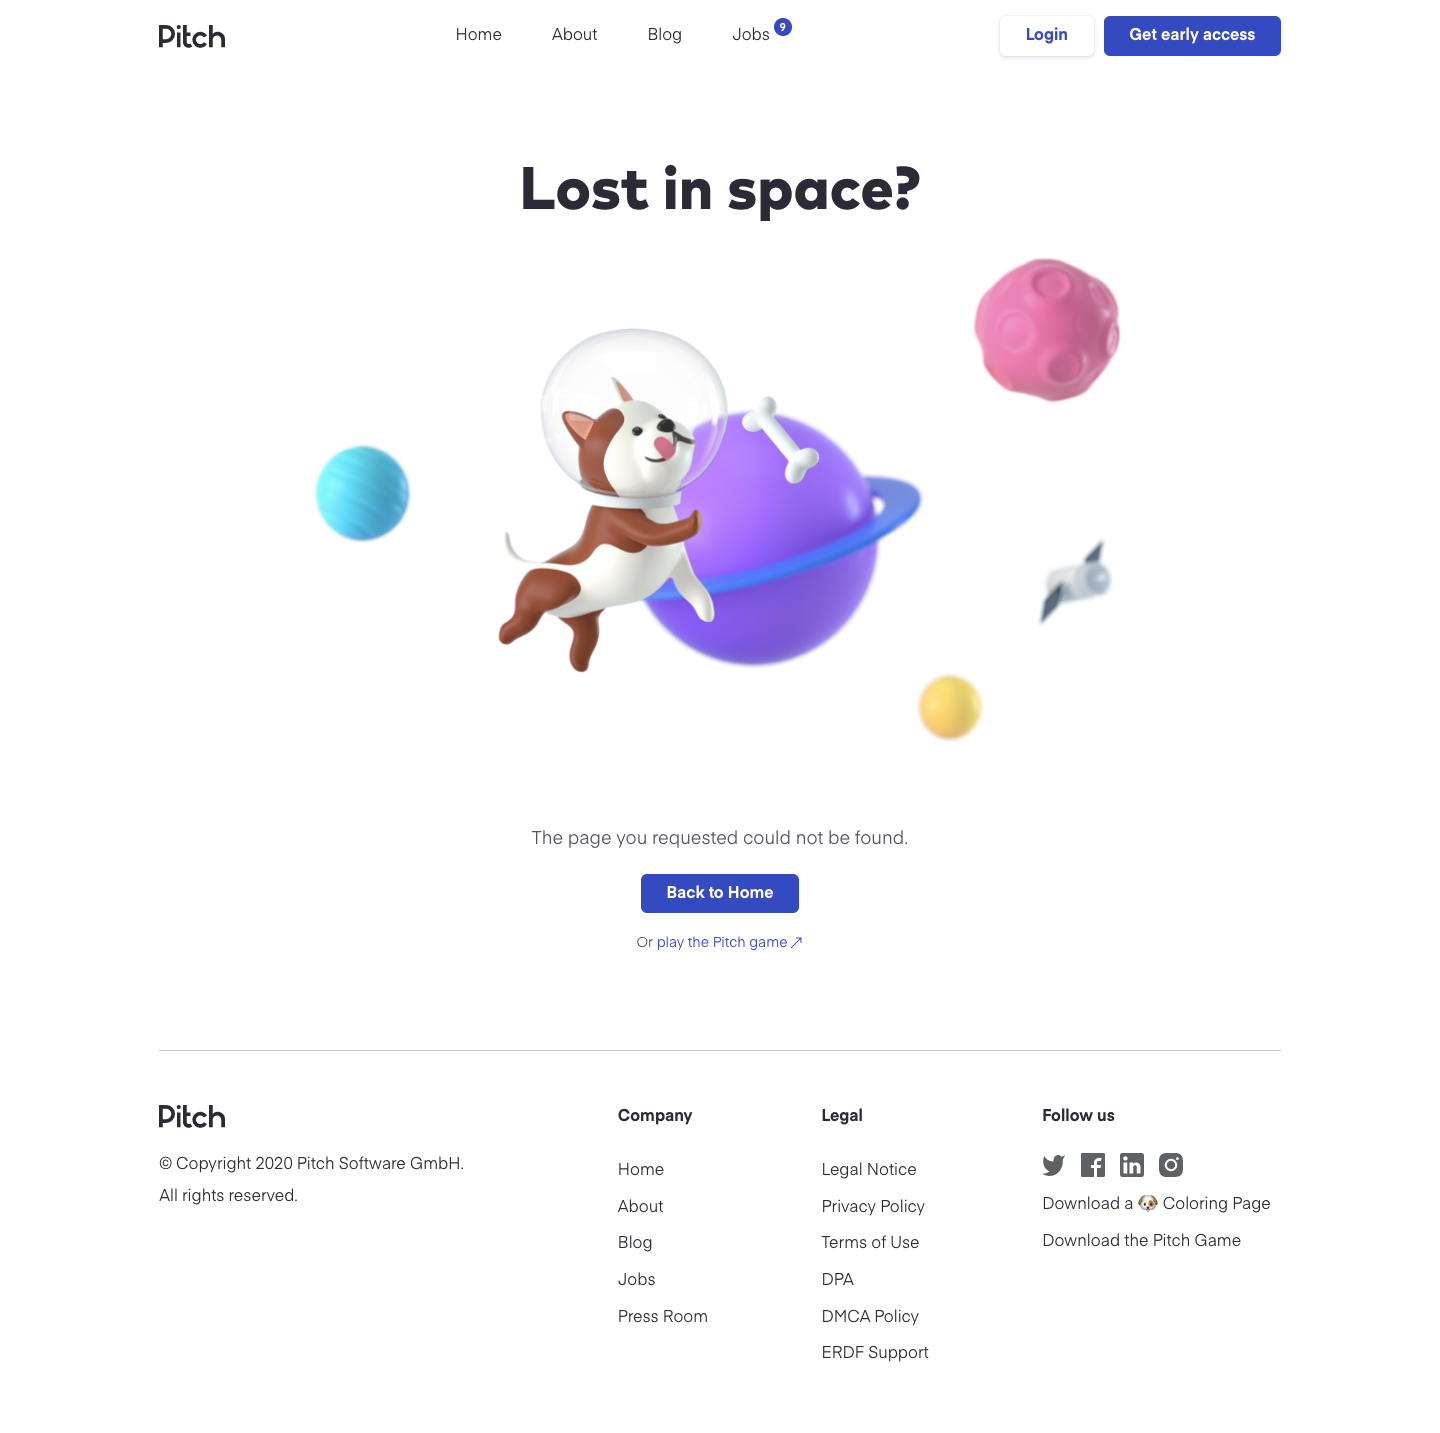 Pitch 404 Page